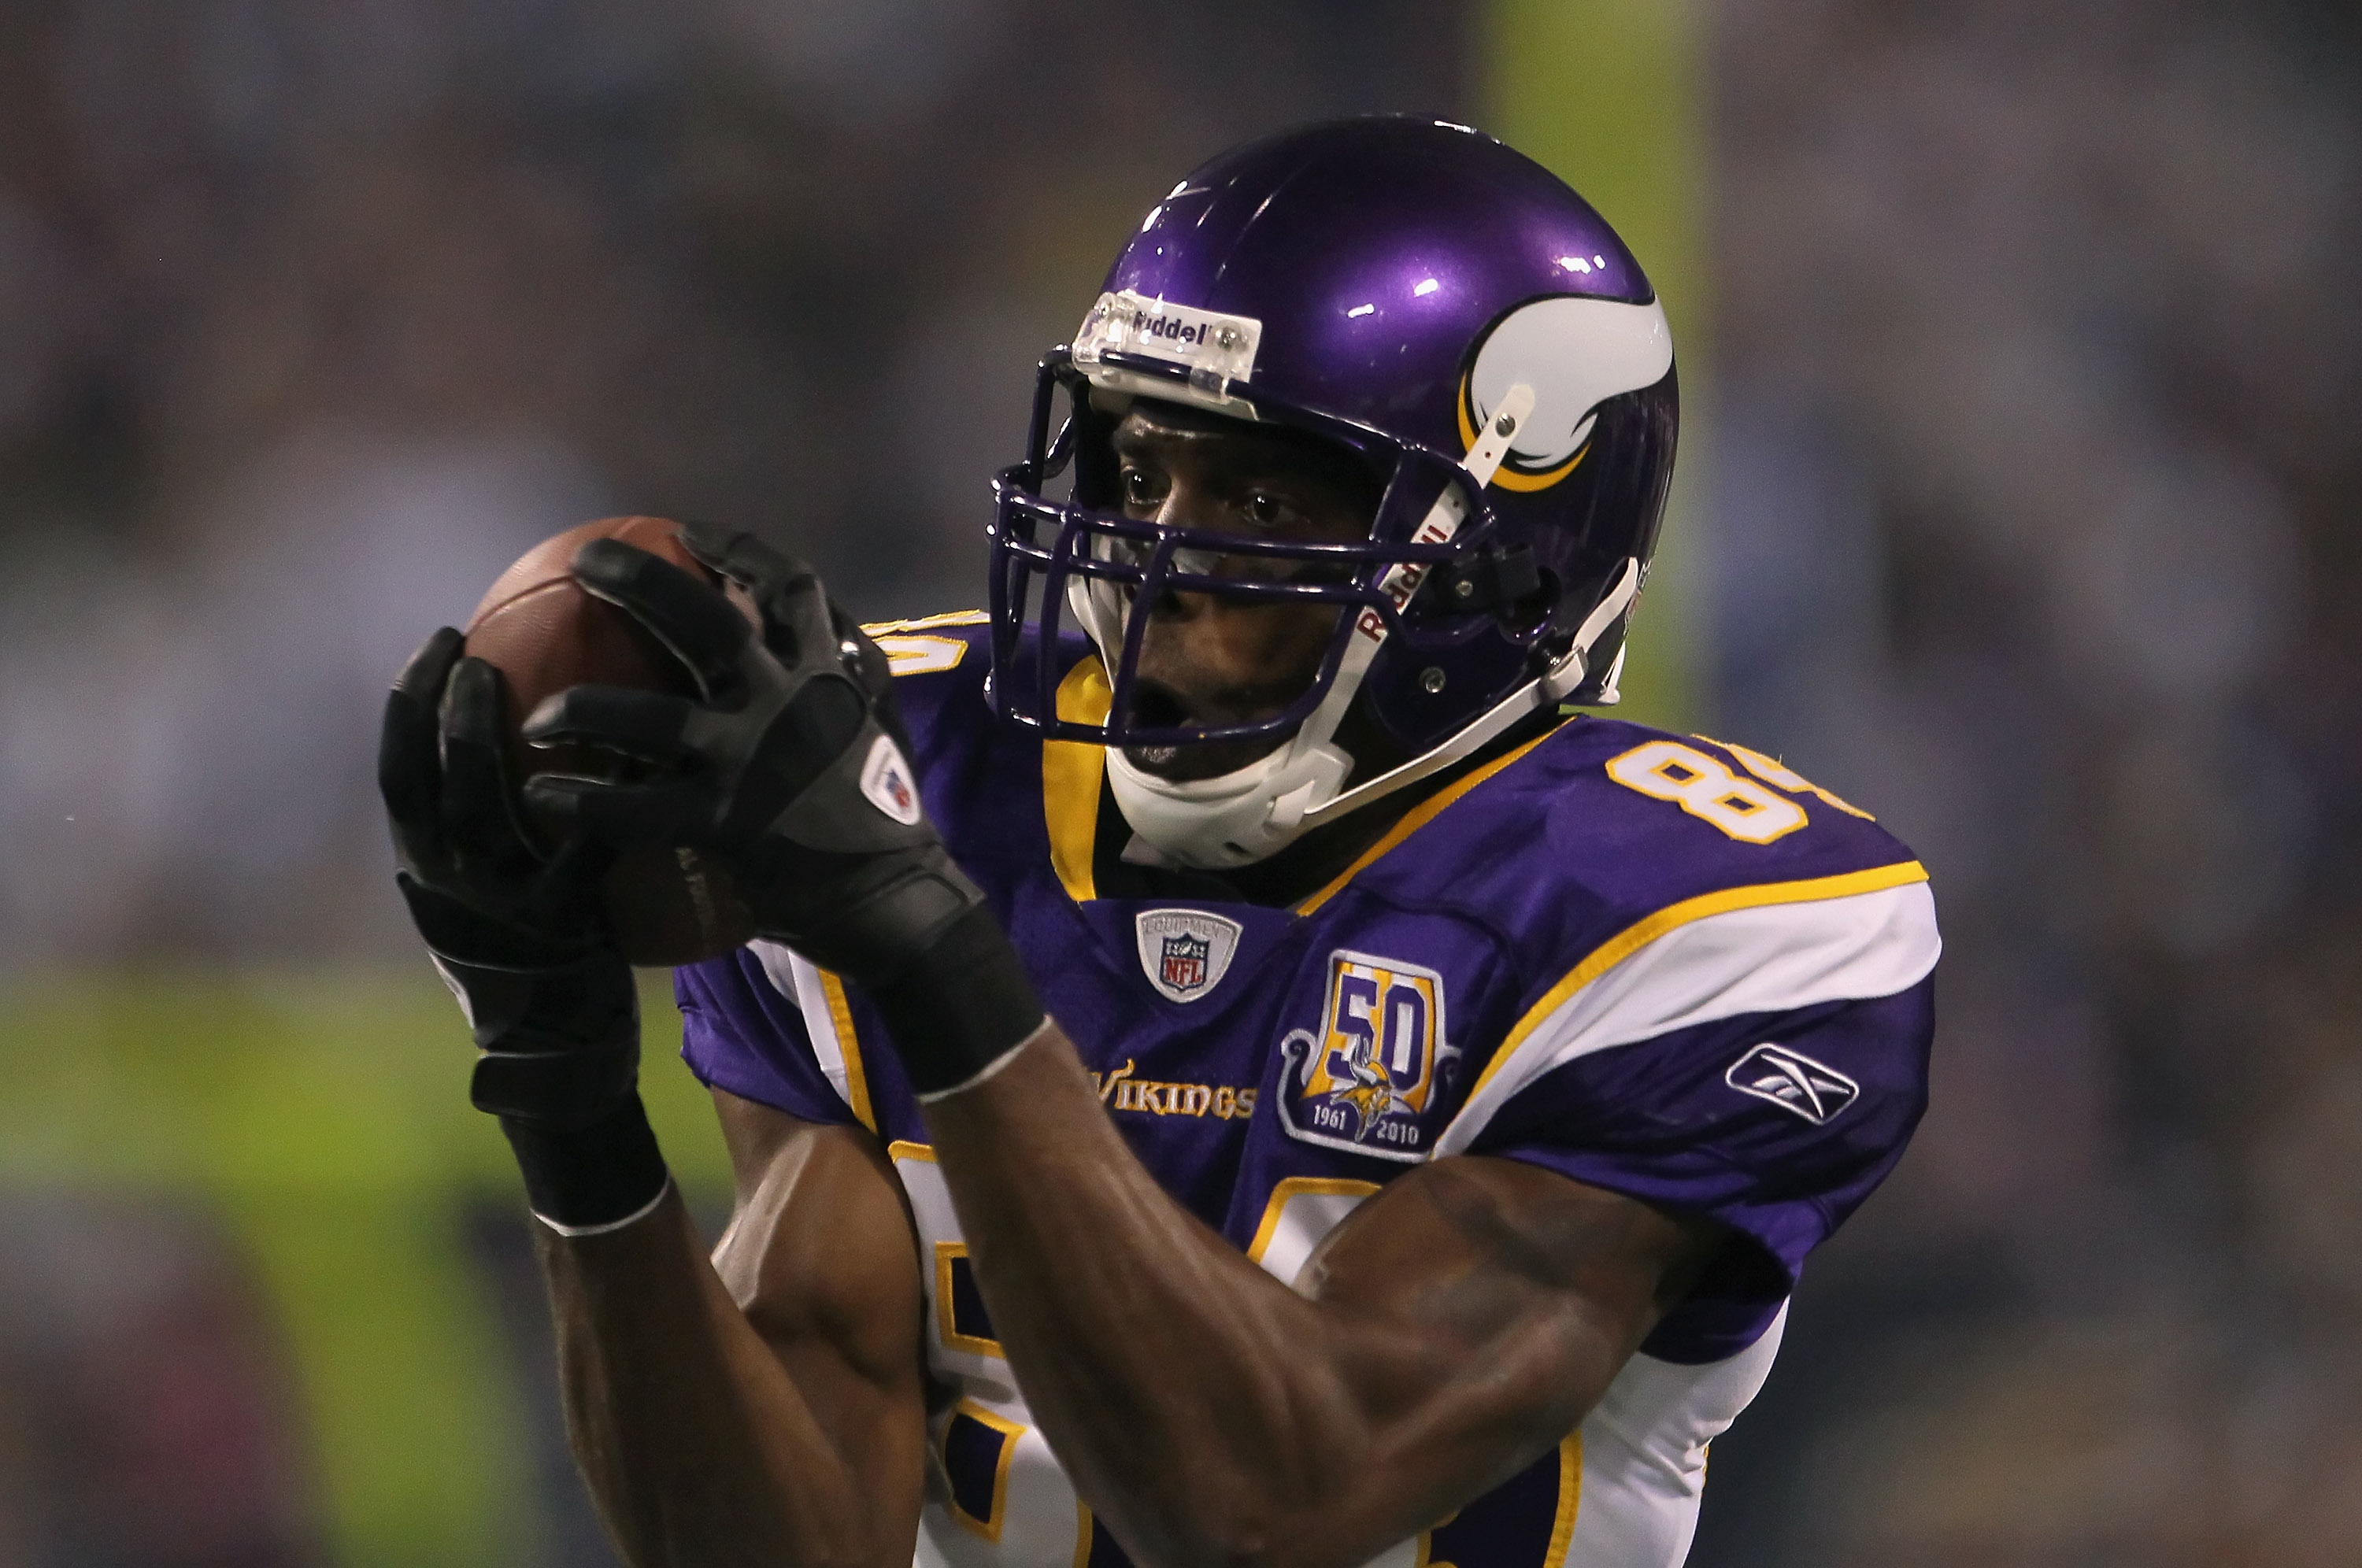 MINNEAPOLIS - OCTOBER 17:  Wide receiver Randy Moss #84 of the Minnesota Vikings catches a pass during the third quarter against the Dallas Cowboys at Mall of America Field on October 17, 2010 in Minneapolis, Minnesota. The Vikings defeated the Cowboys 24